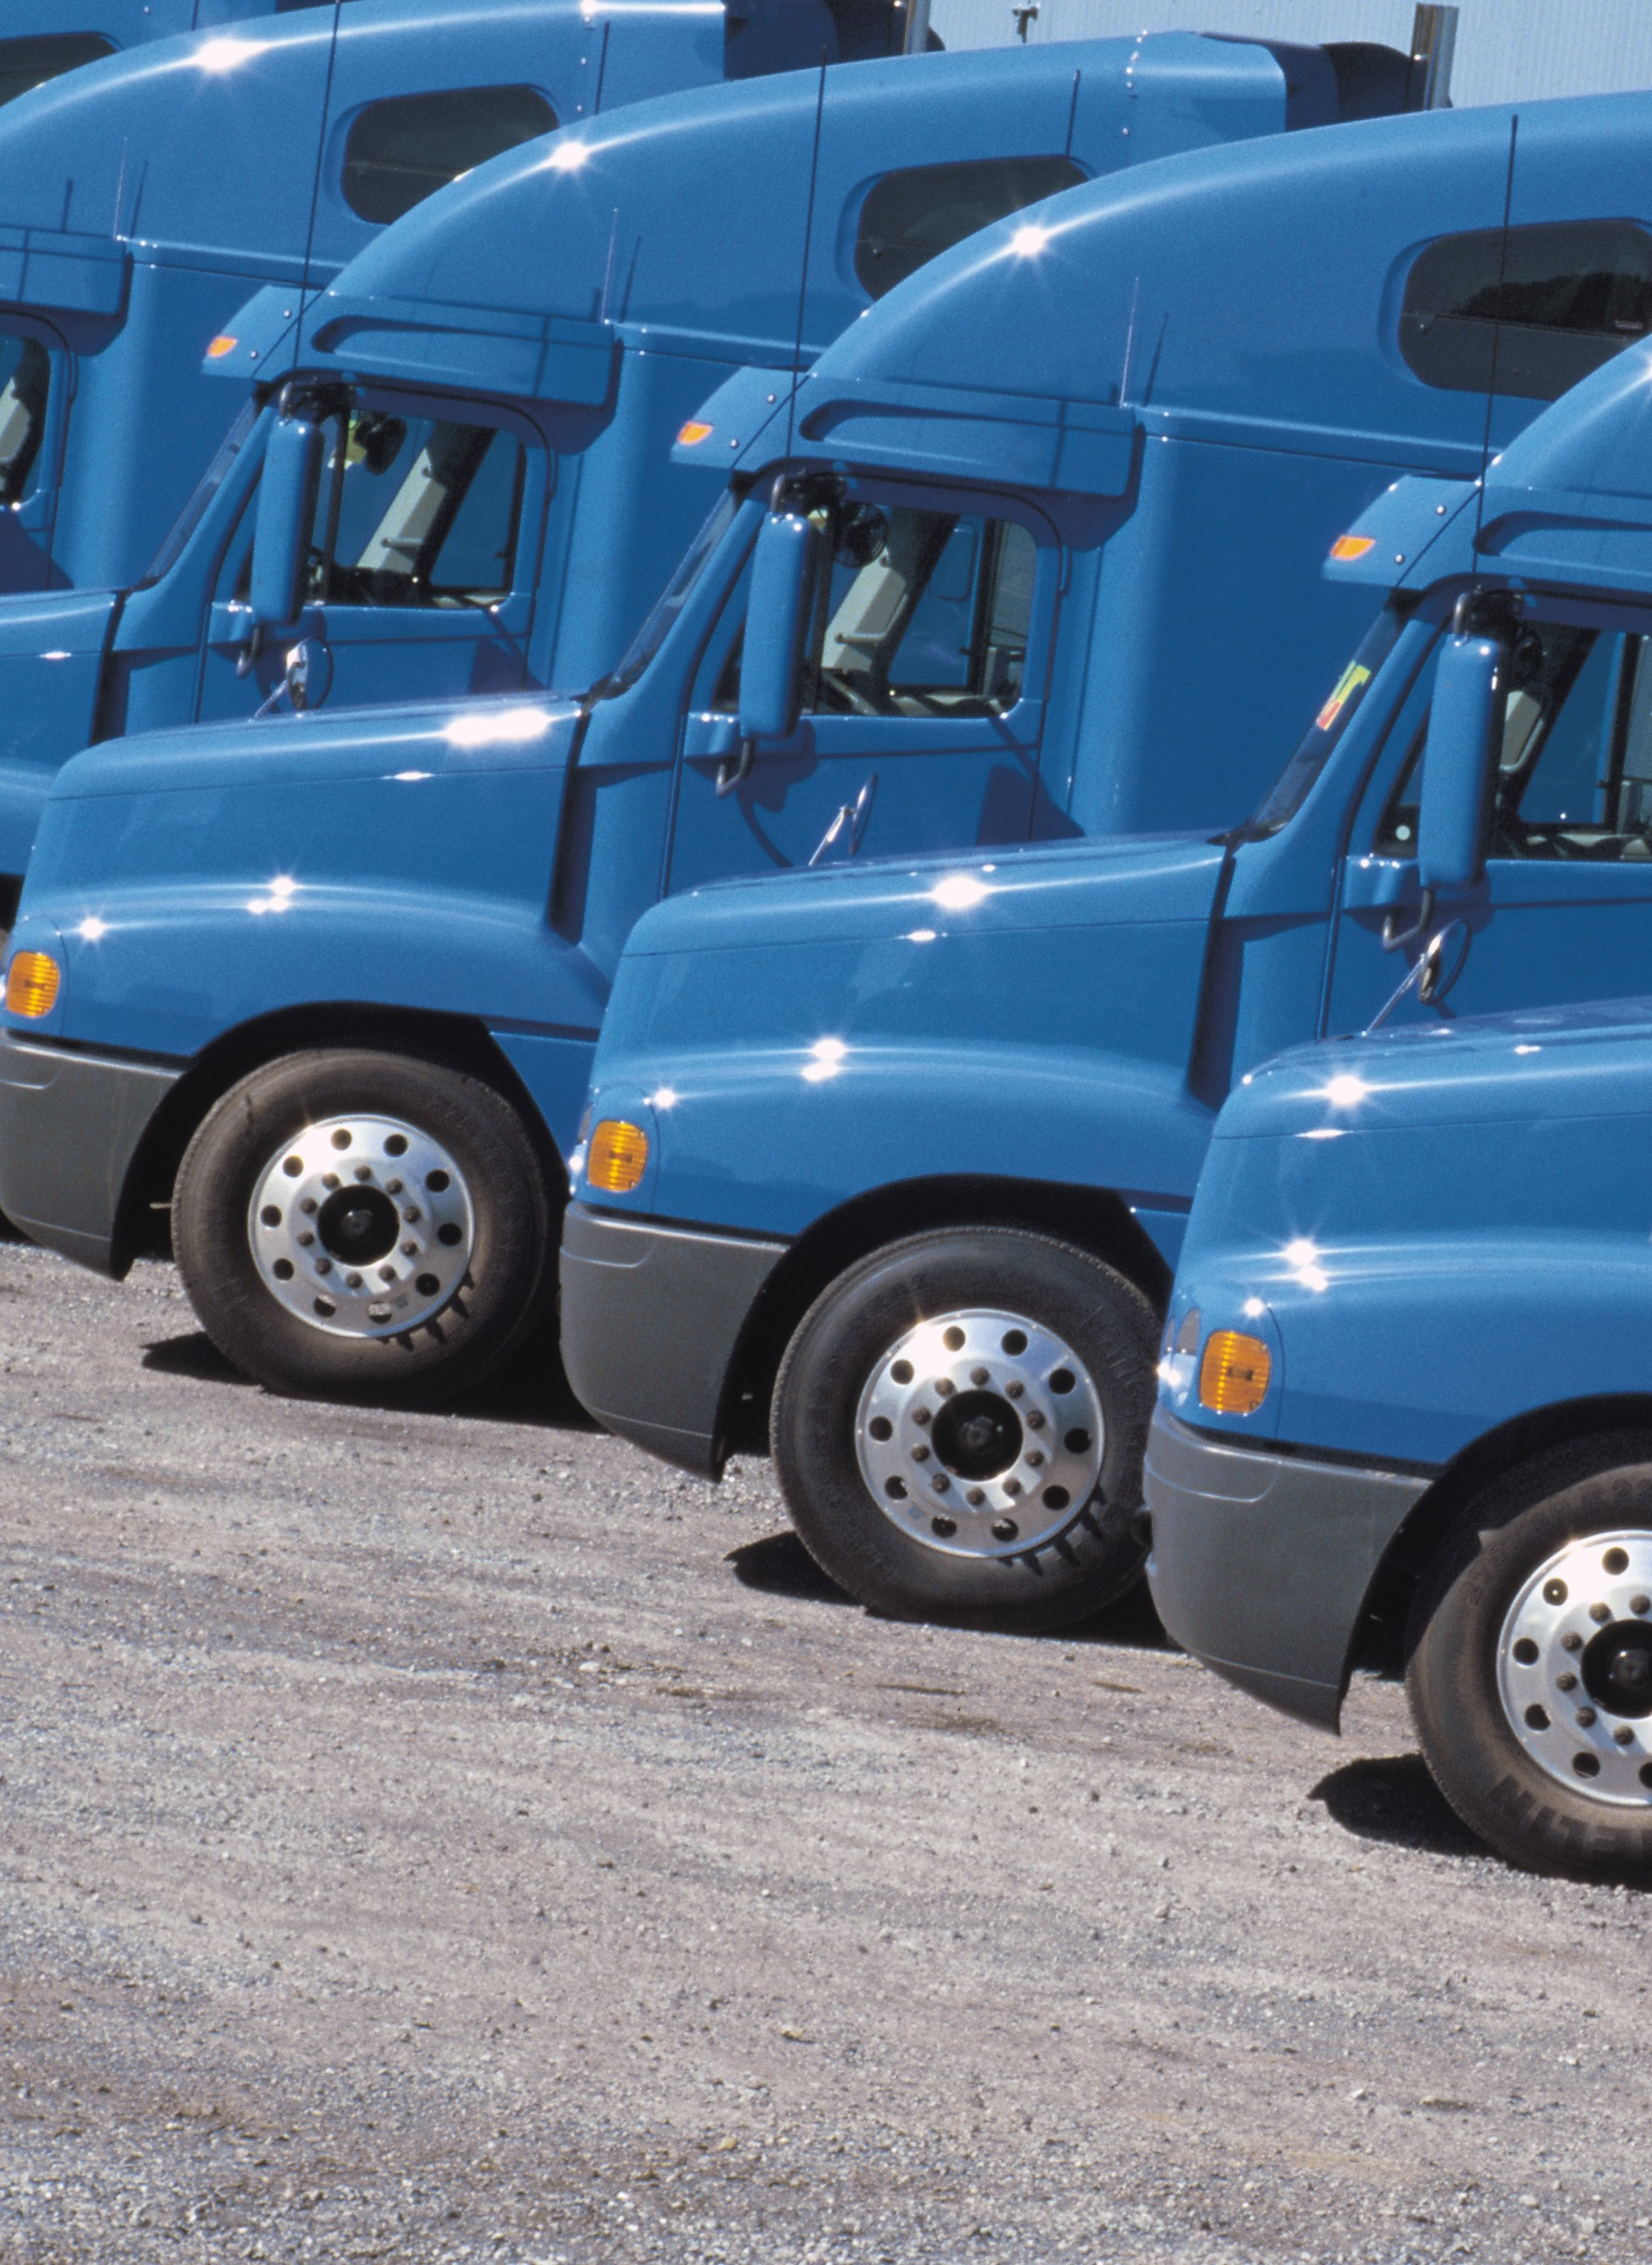 DEDICATED TRANSPORTATION: Outsourcing fleet management to a third party